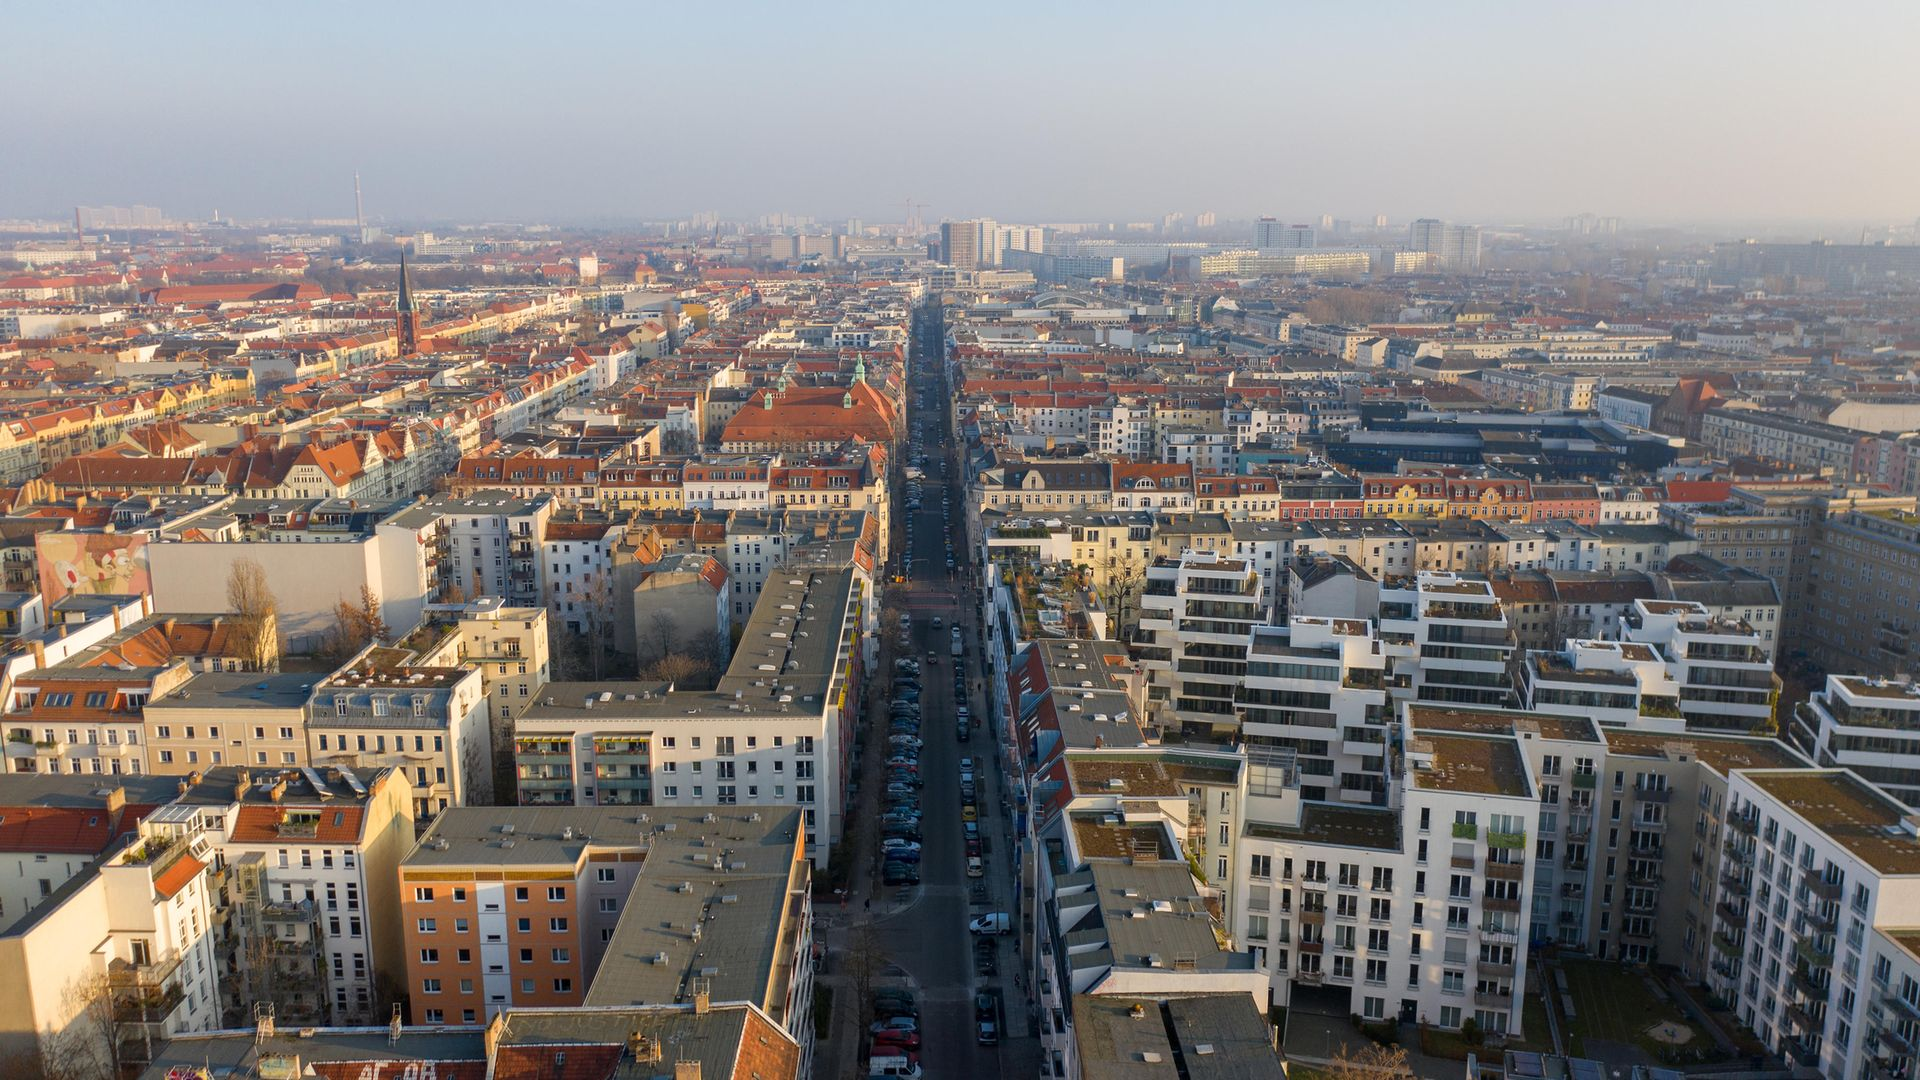 The Friedrichshain district of Berlin as seen from above, during the city's recent lockdown. The neighbourhood is considered one of the German capital's trendiest - Credit: Getty Images